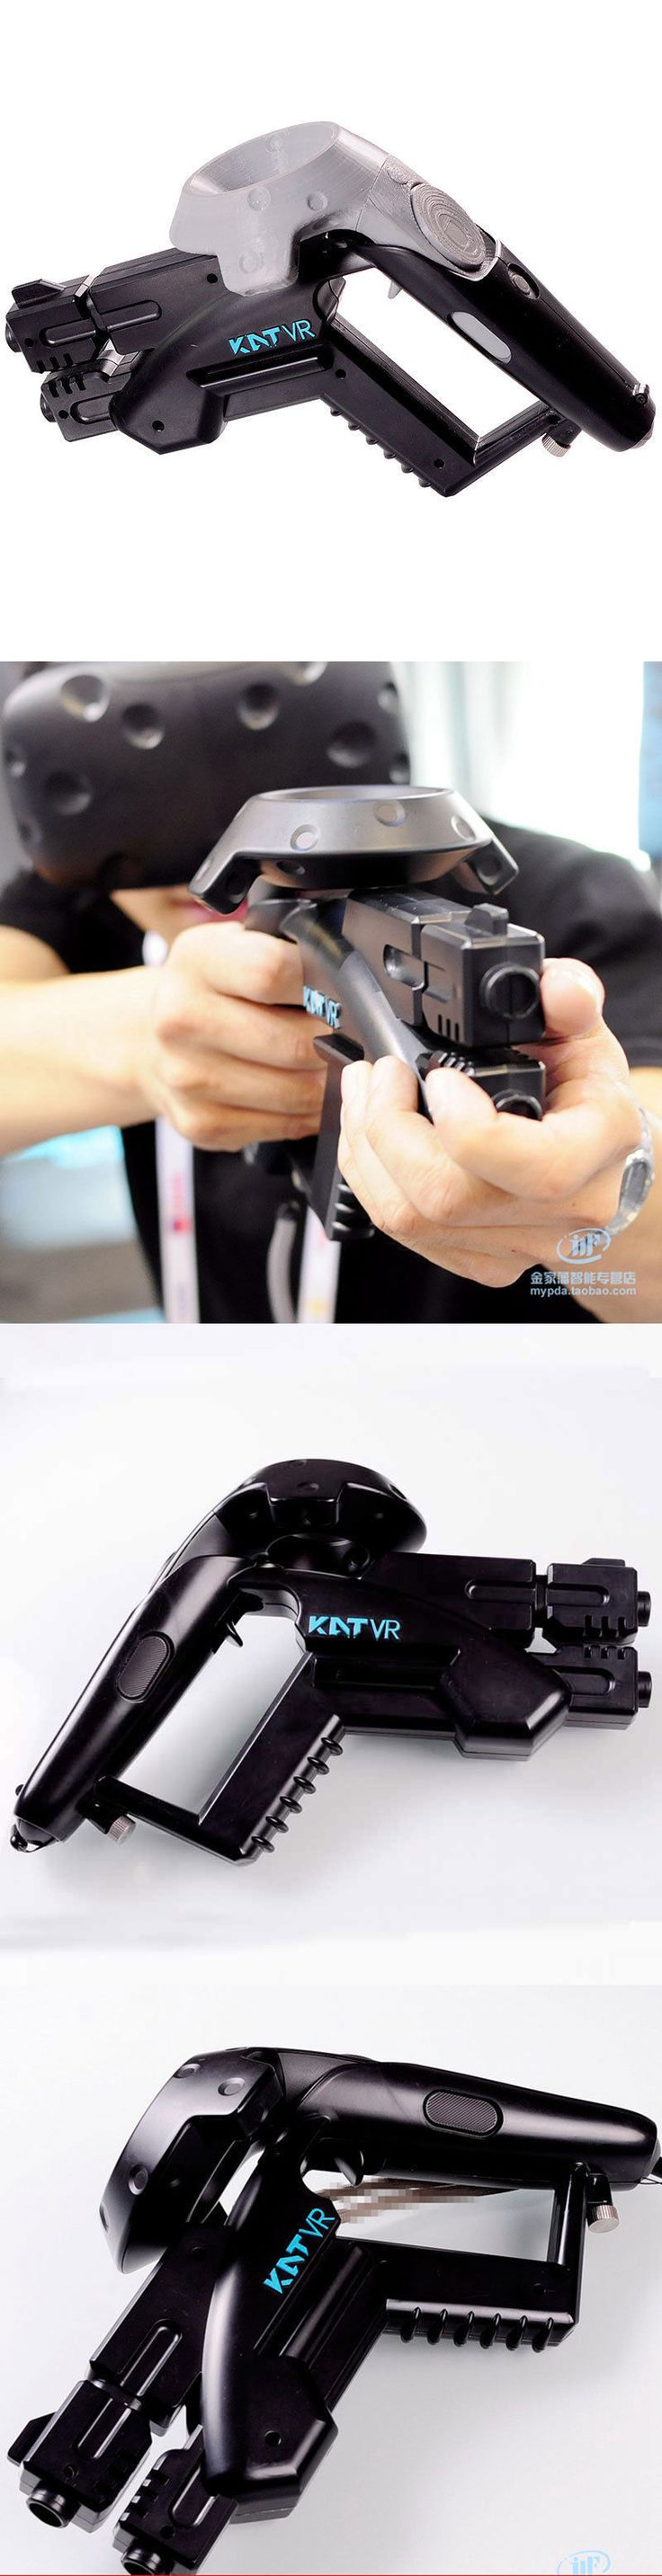 Other Virtual Reality Accs: Small Pistol Gun Vr Handgun Shooting Game For Htc Vive Glasses Vr Shop -> BUY IT NOW ONLY: $42.99 on eBay!